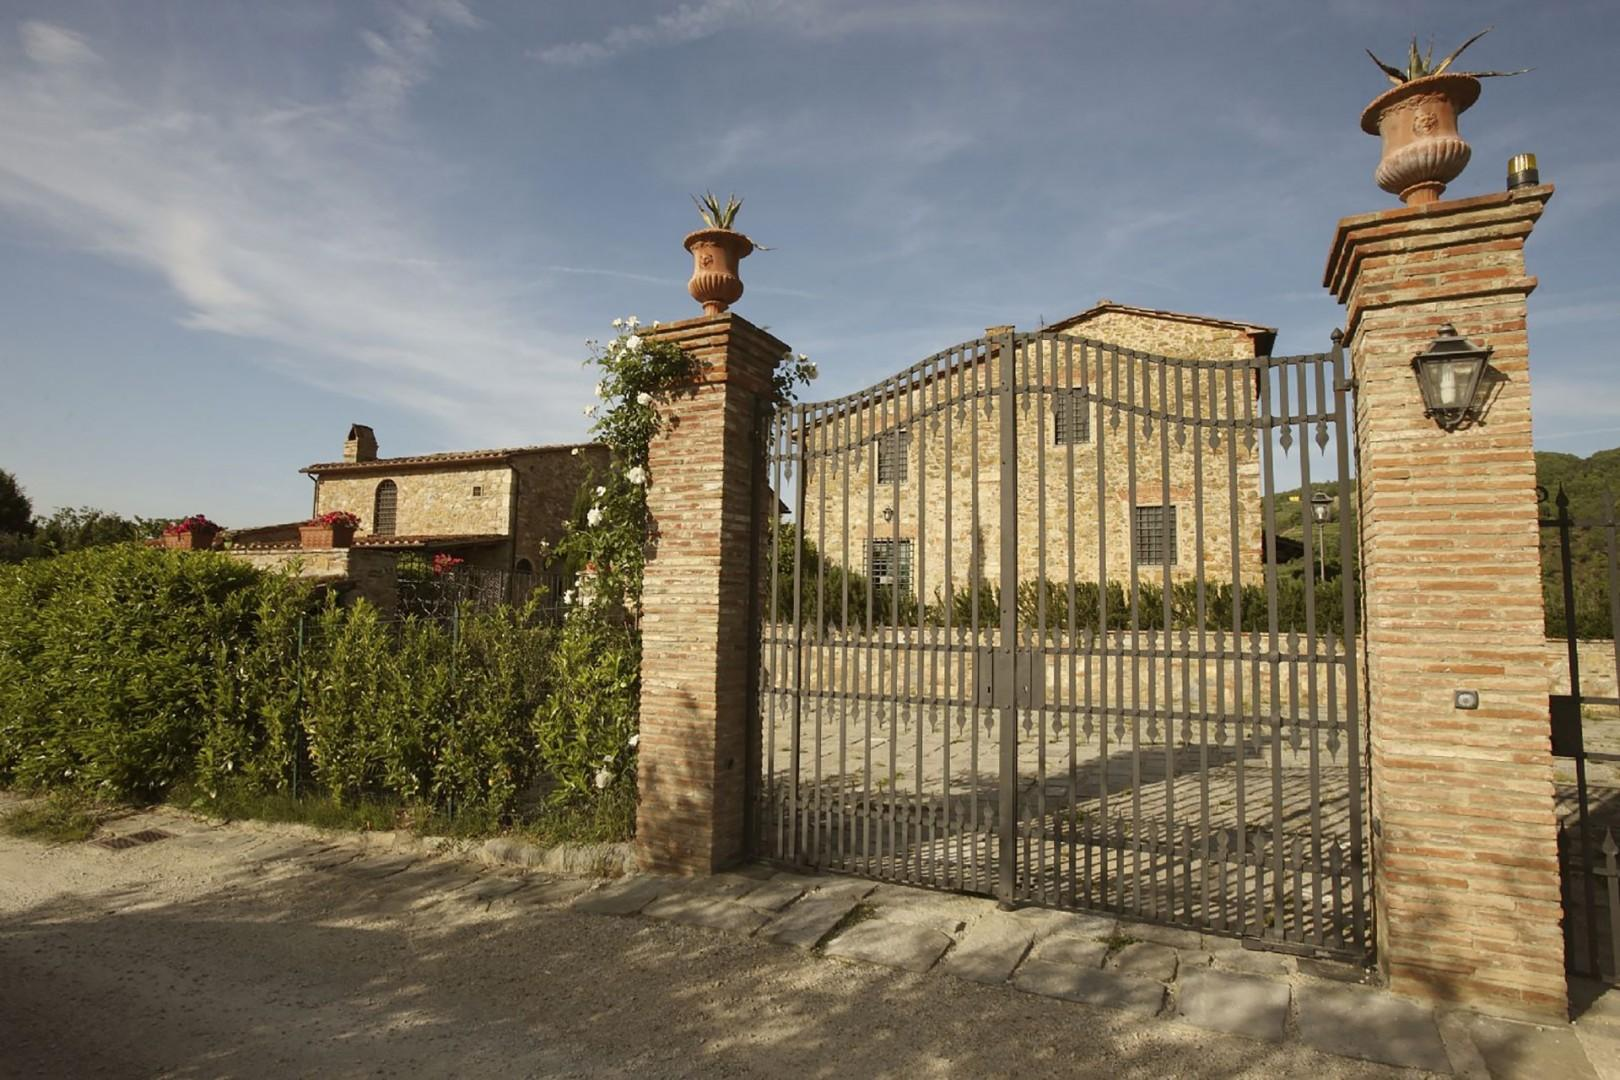 The front gate leads to a generous, paved parking area outside the villa.